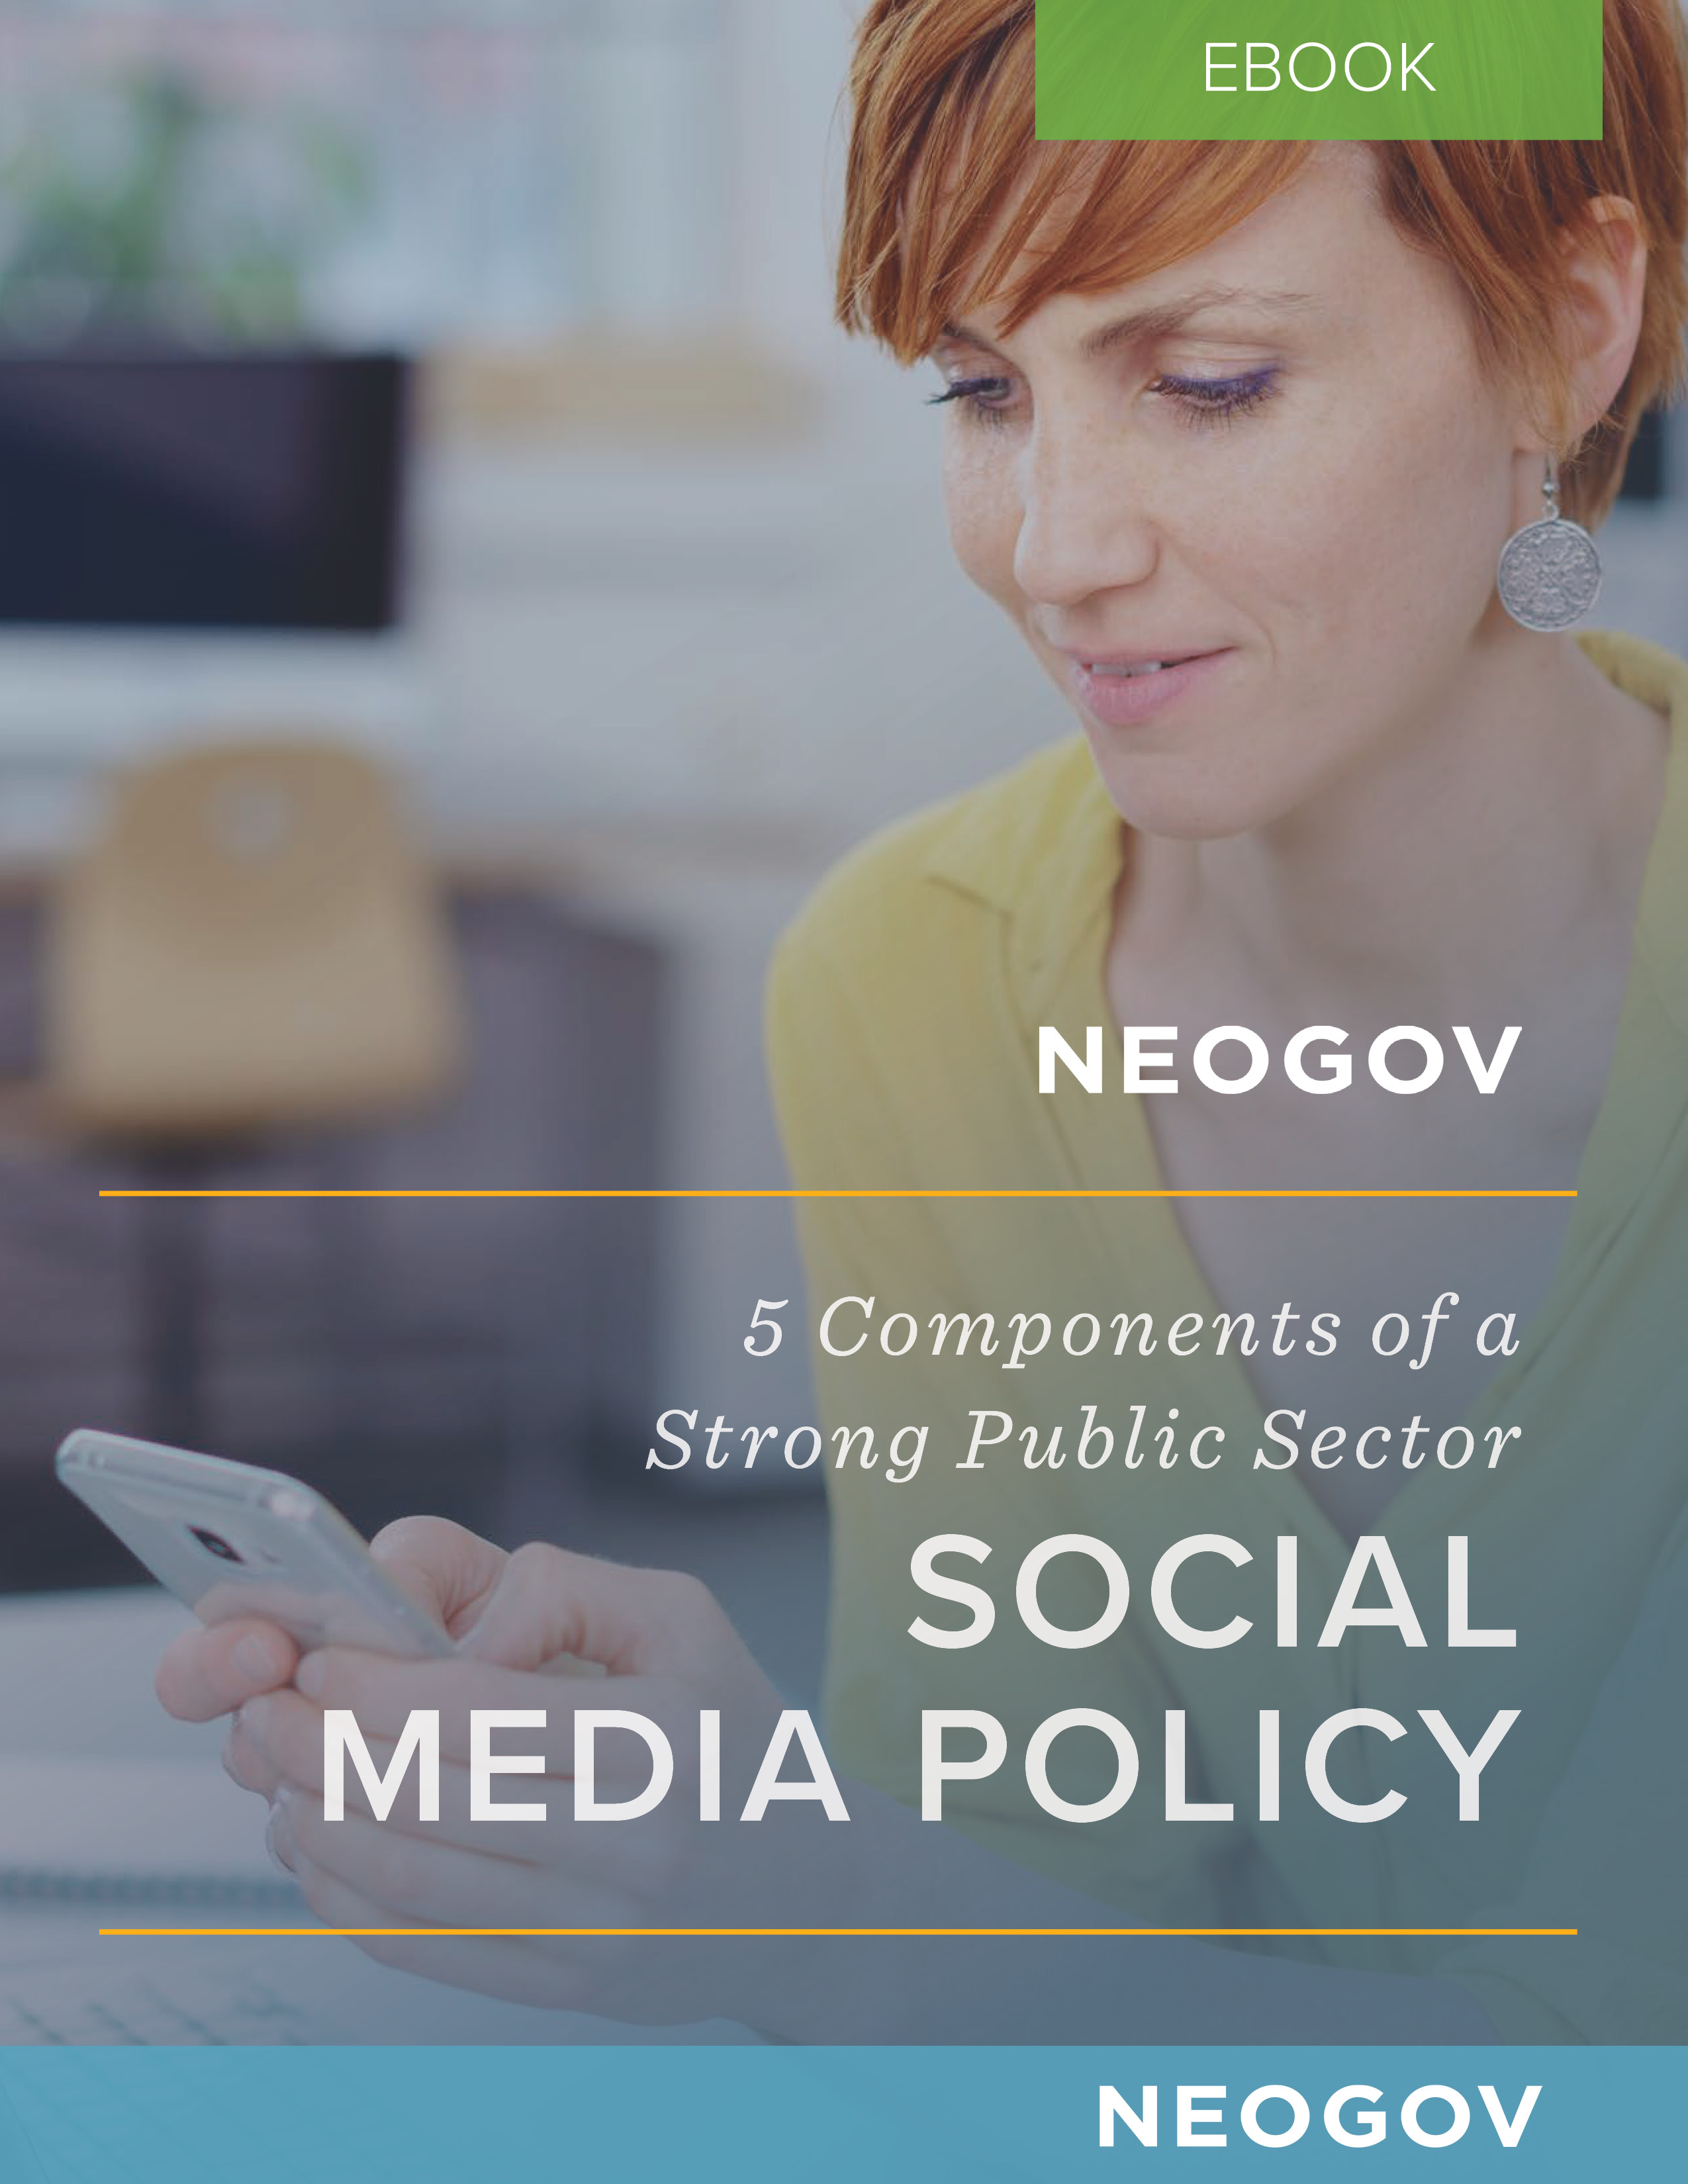 5 Components of a Strong Social Media Policy